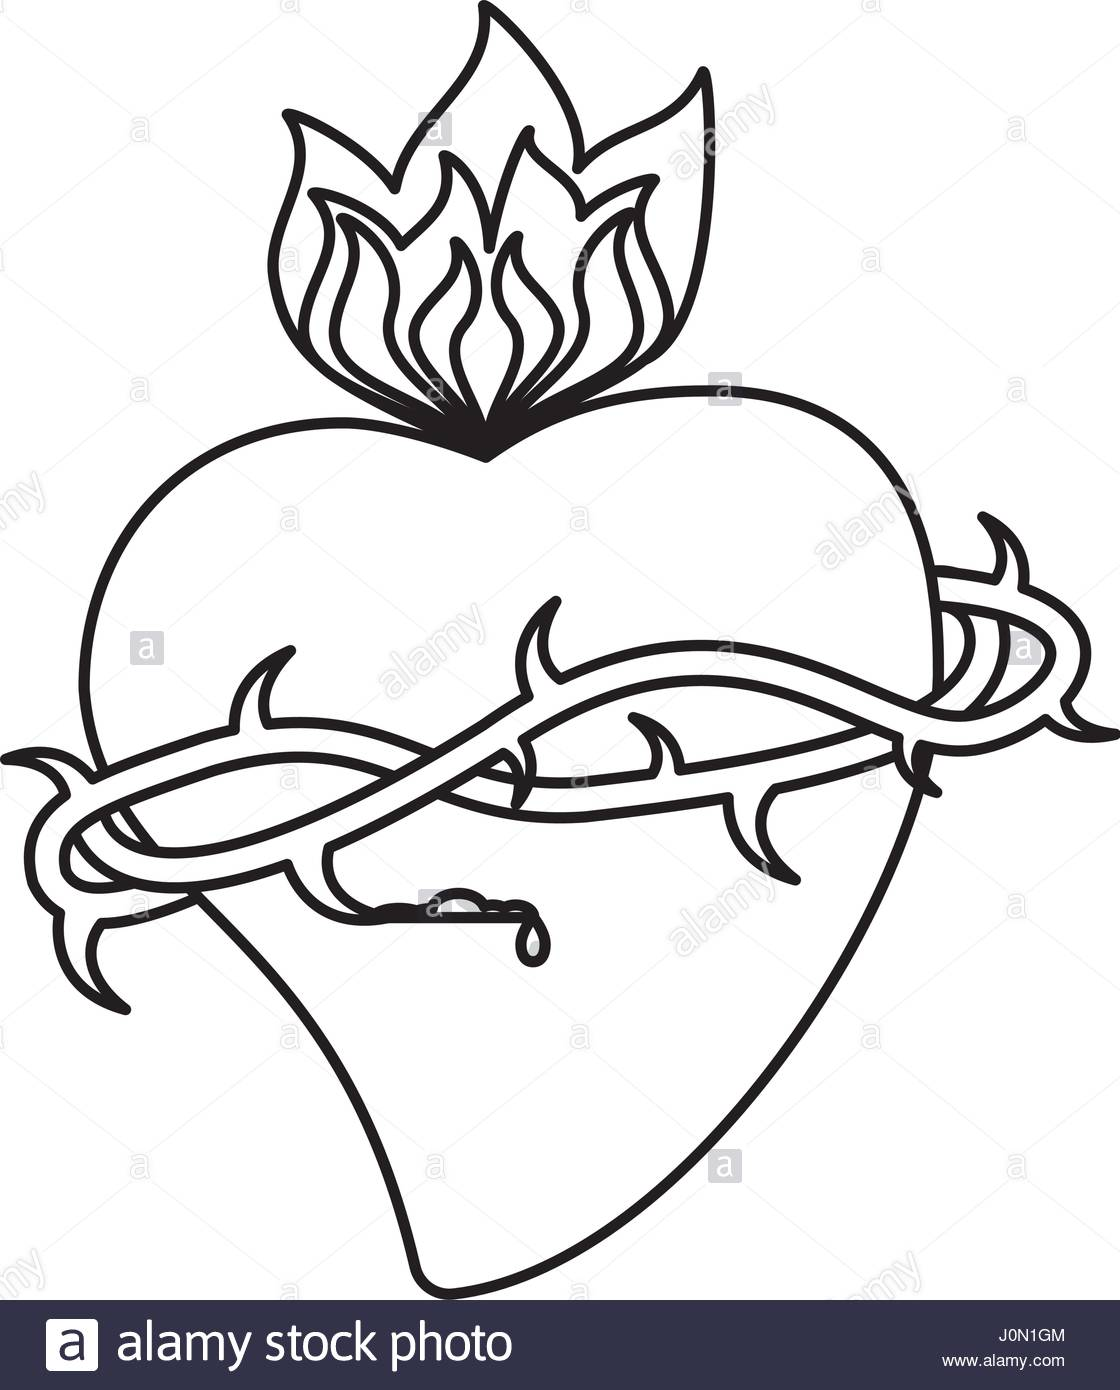 1120x1390 Sacred Heart Crown Flame Outline Stock Vector Art Amp Illustration